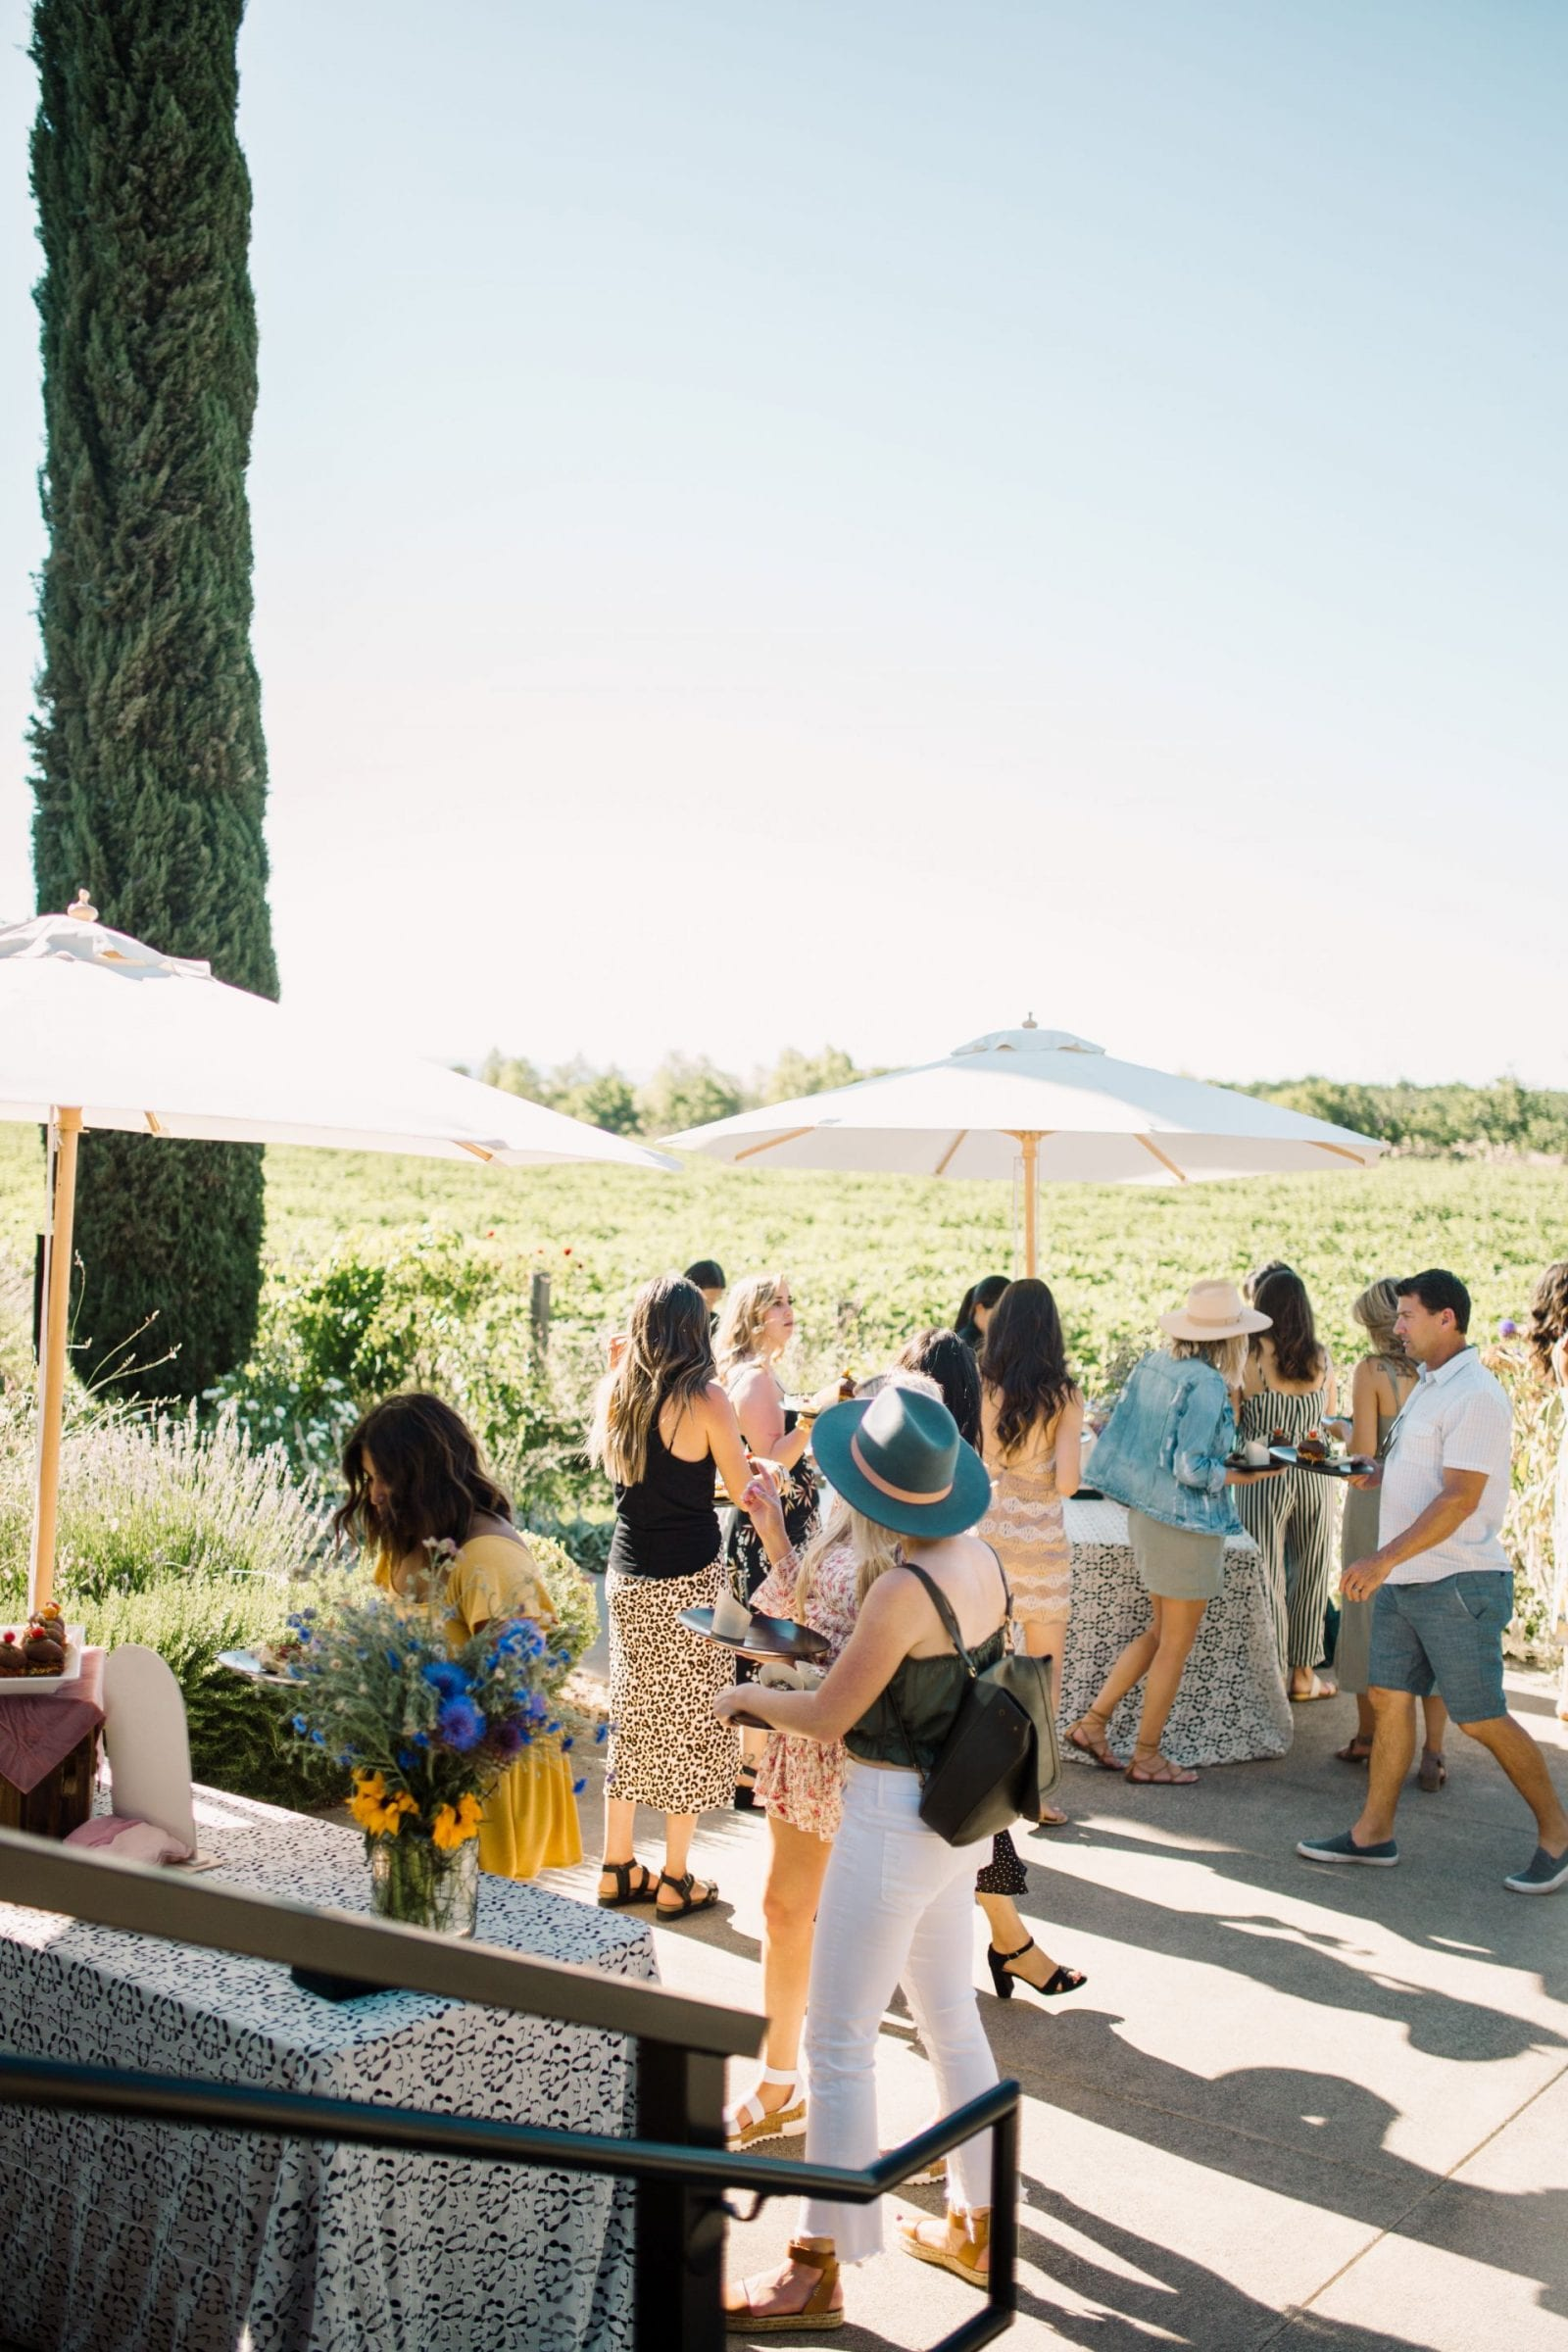 Park Winters Summerland 2019 | Northern California Wedding Event Venue | Summer Pool Party Inspiration | SarahMichiko.com